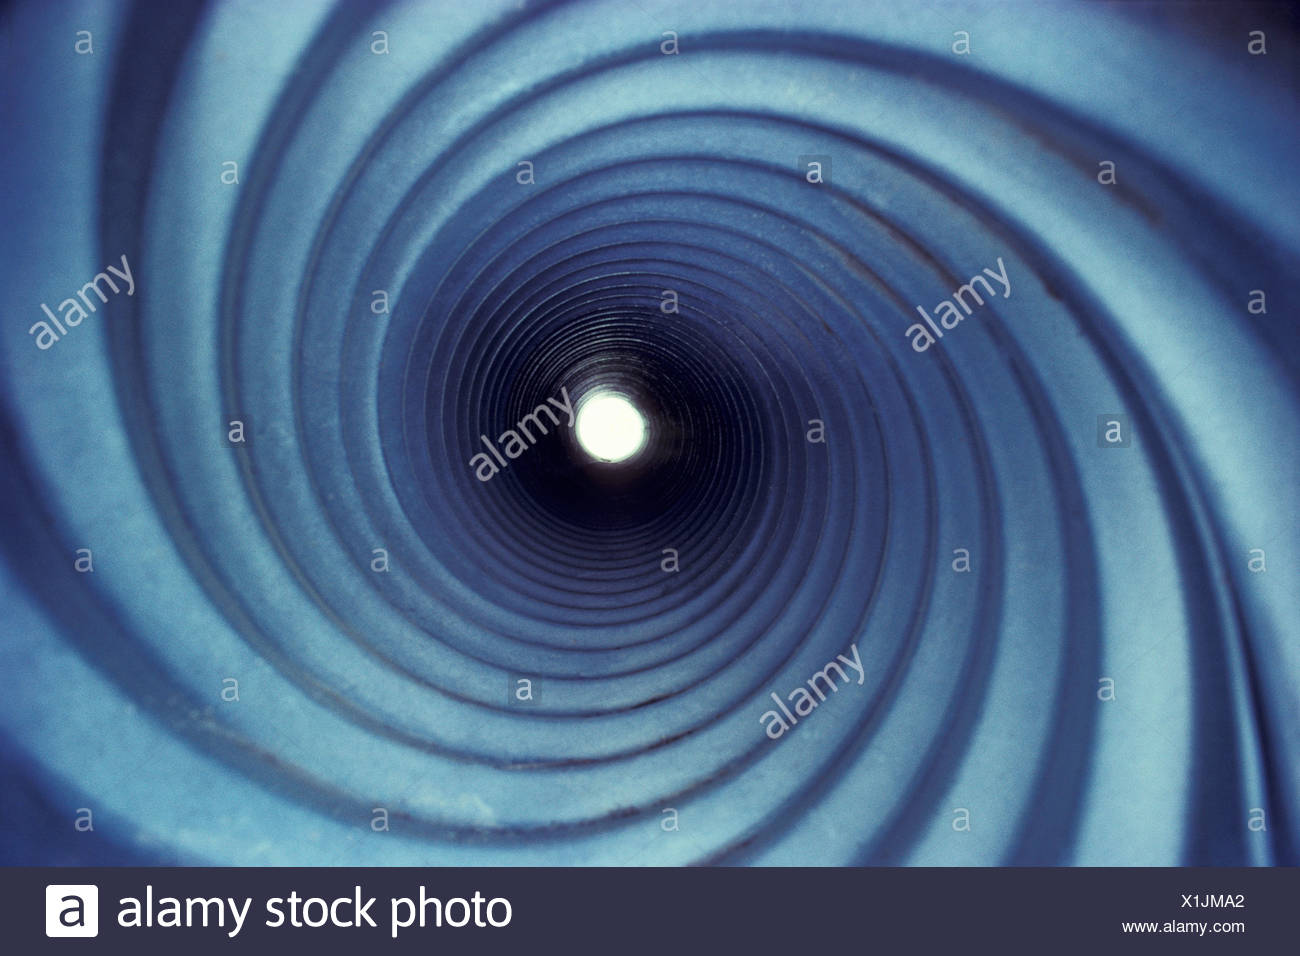 Galvanized Steel Culvert Pipe, Saint-Georges, Beauce, Quebec, Canada - Stock Image